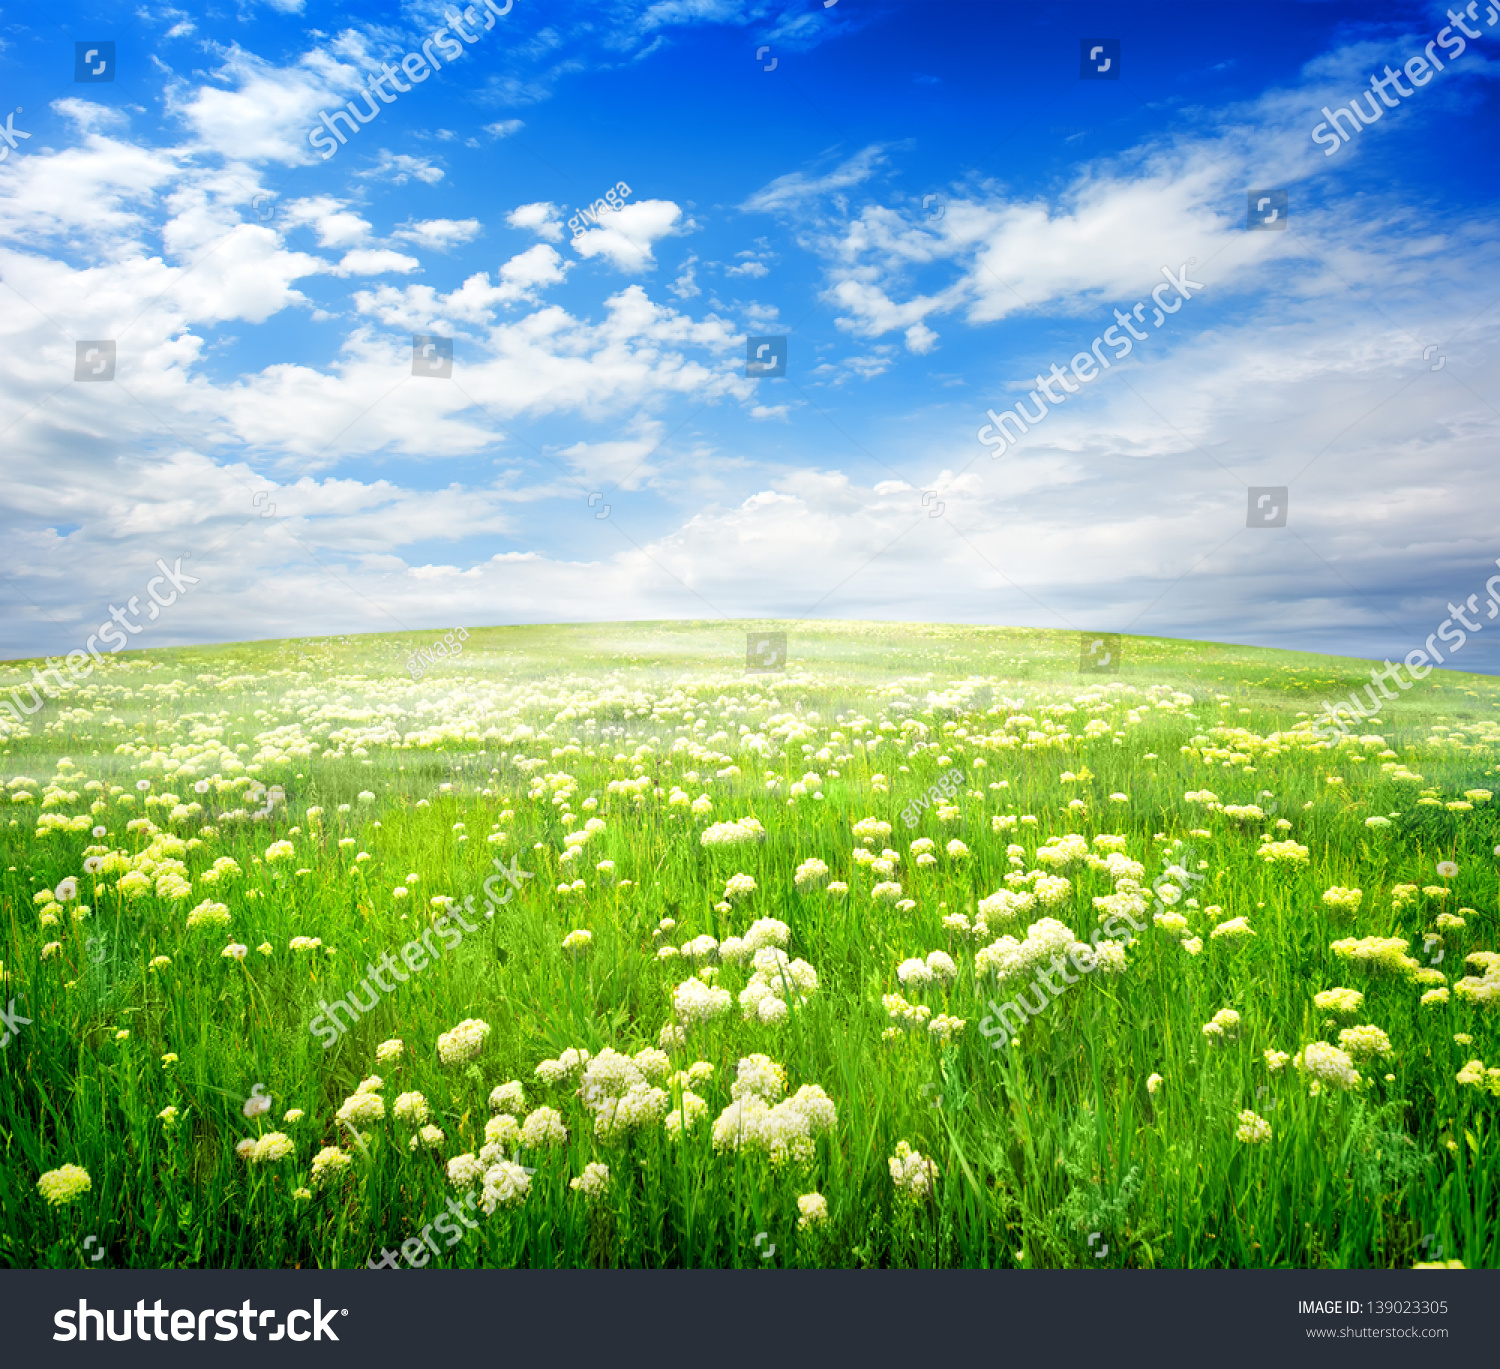 Field Of White Flowers On A Sunny Day Ez Canvas